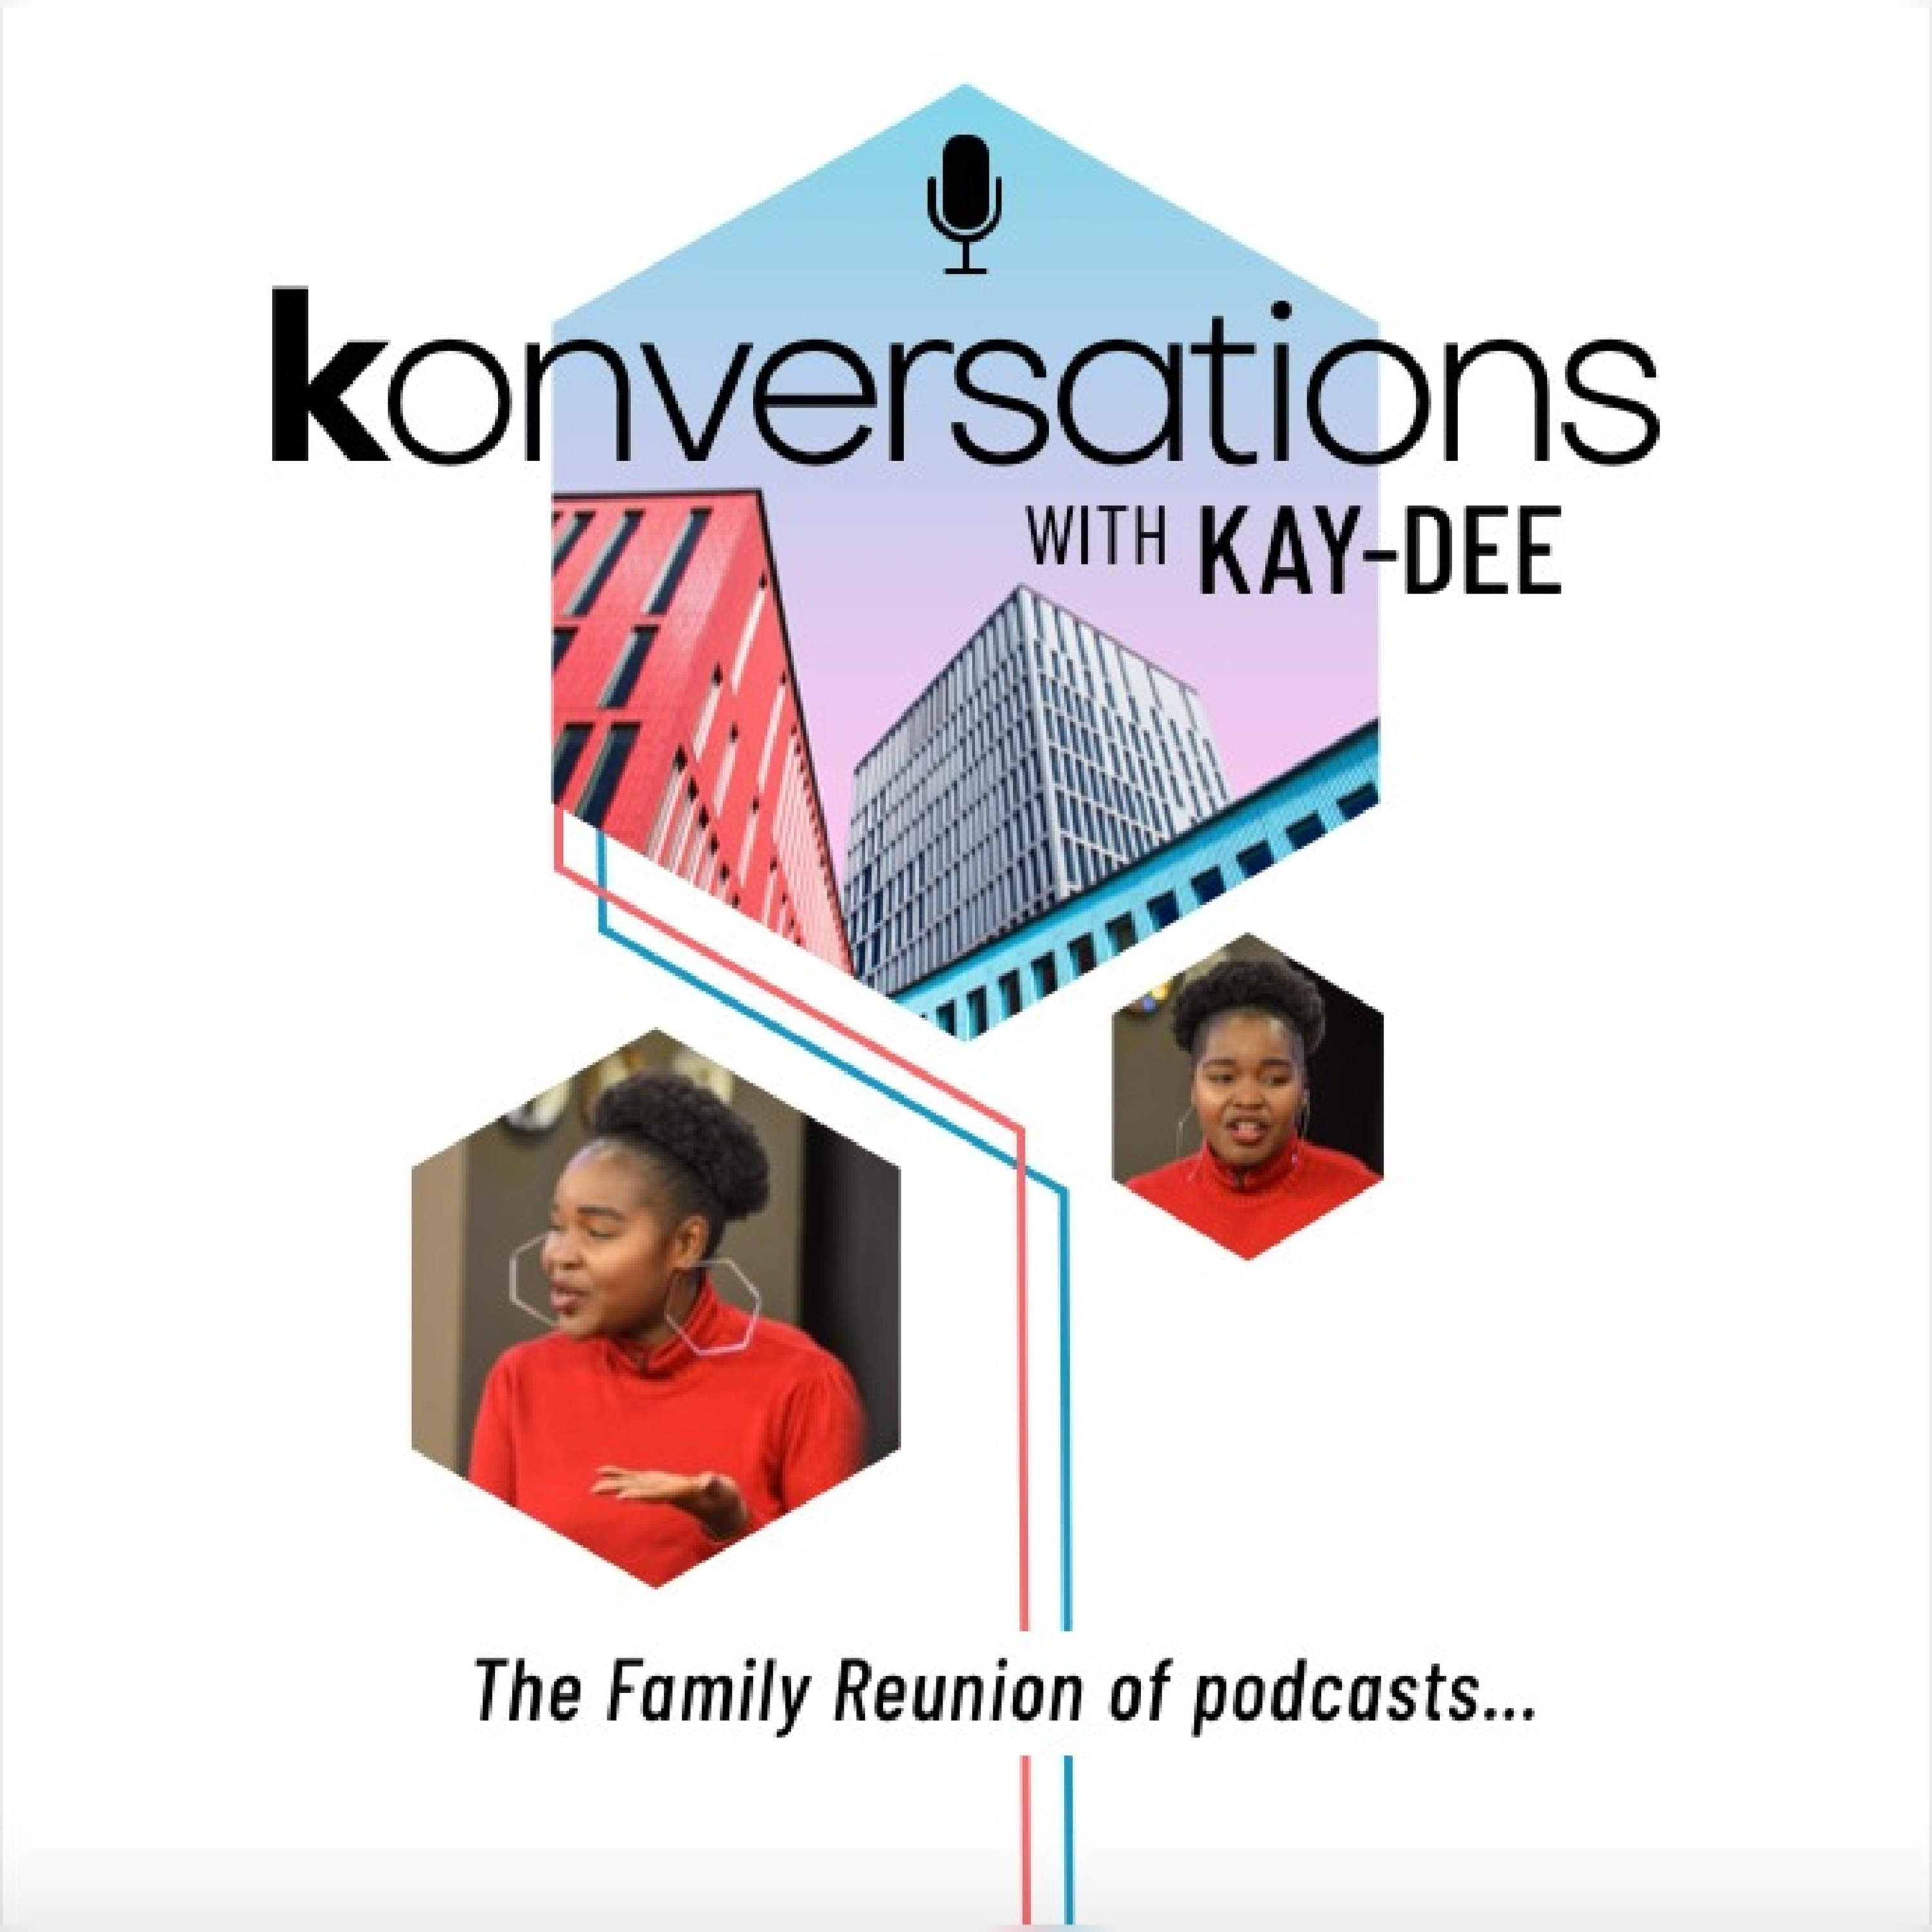 Konversations with Kay-Dee podcast